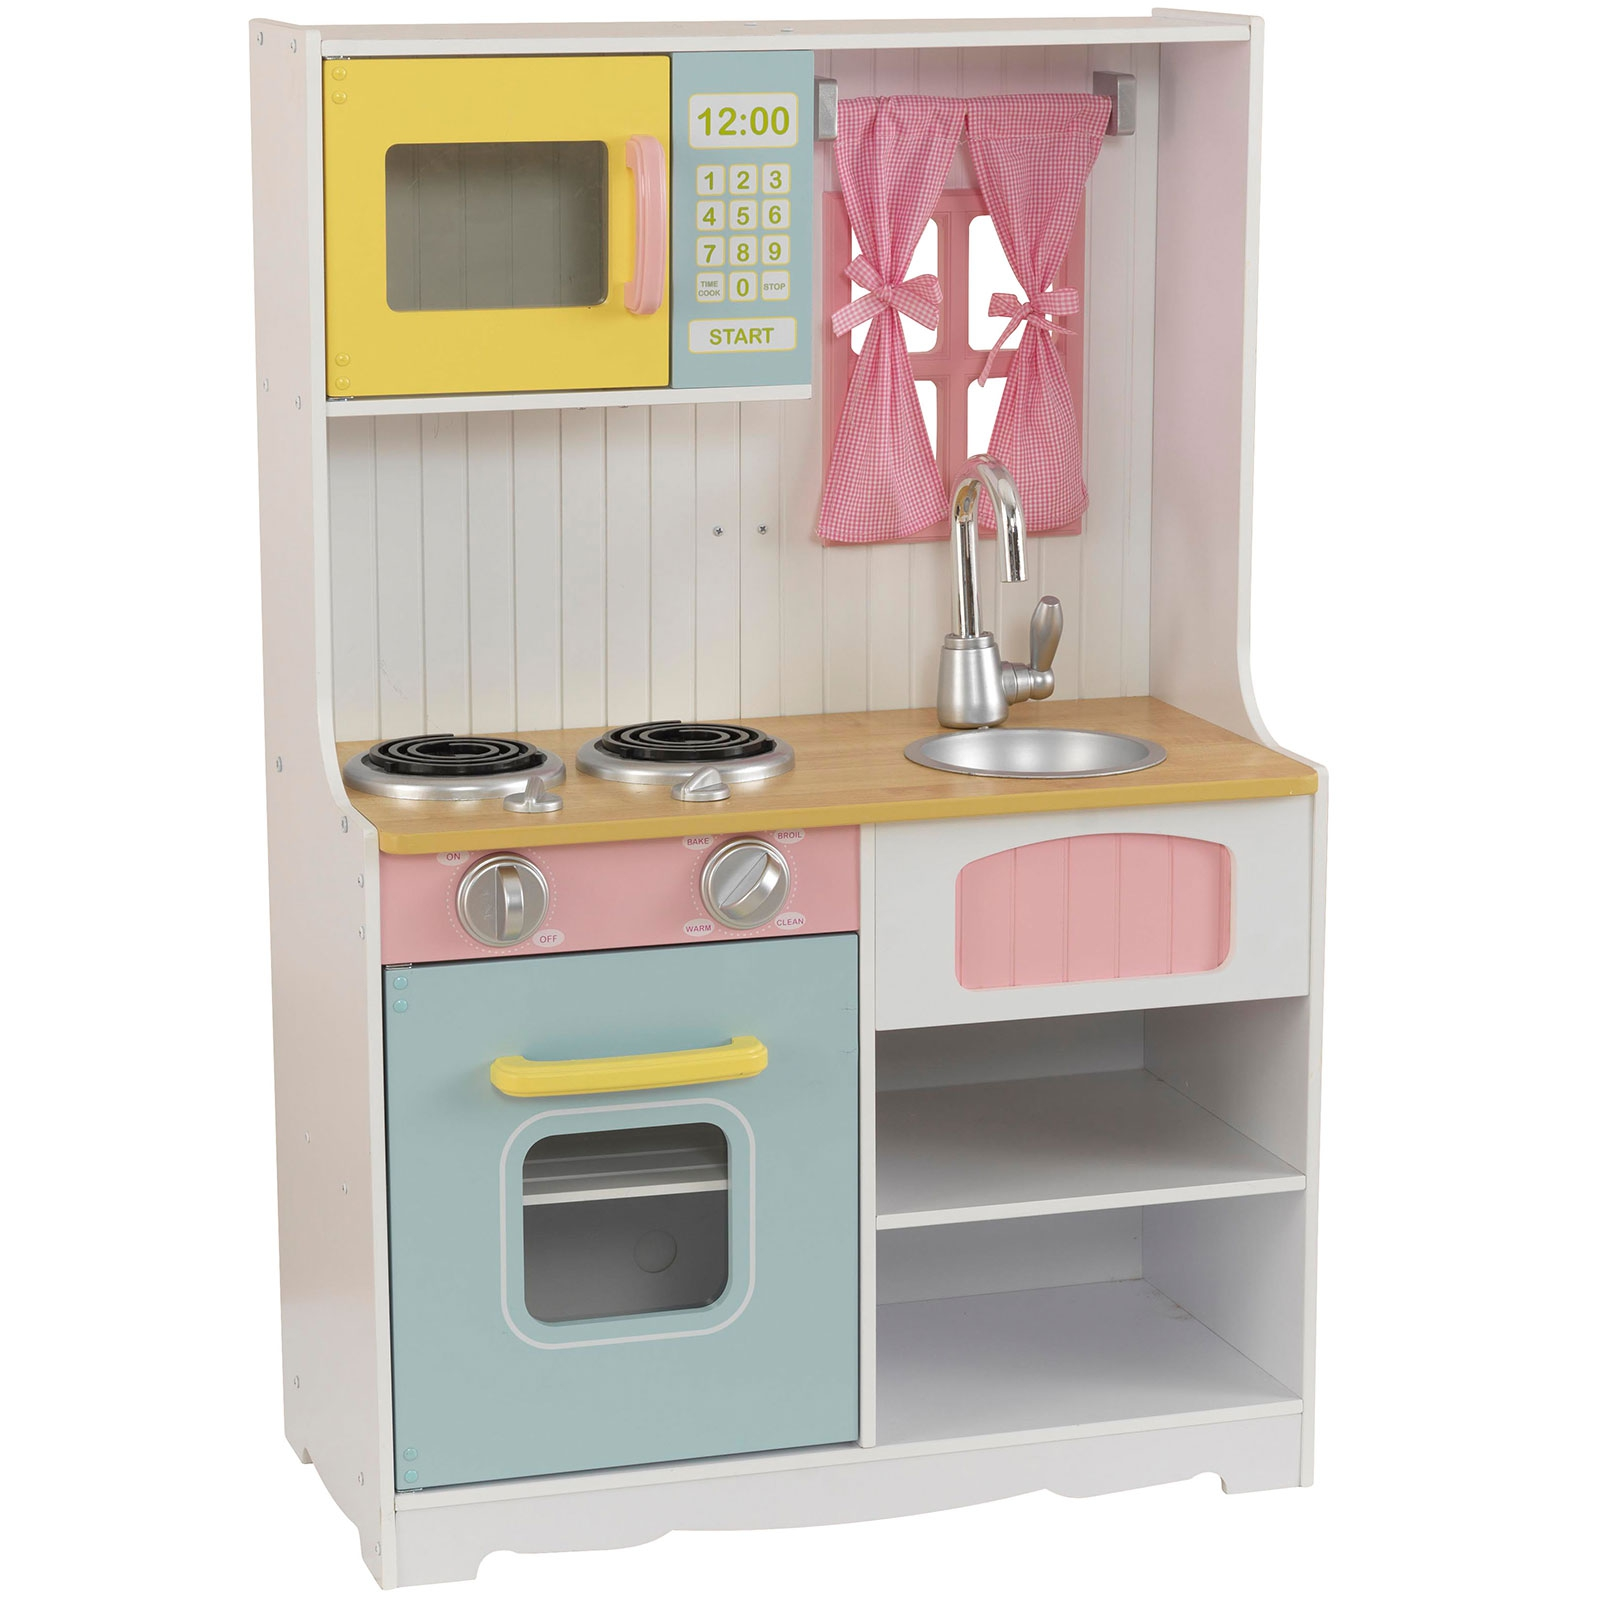 perfect fabriquer cuisine pour petite fille des cuisines pour enfant pour faire comme les grands. Black Bedroom Furniture Sets. Home Design Ideas